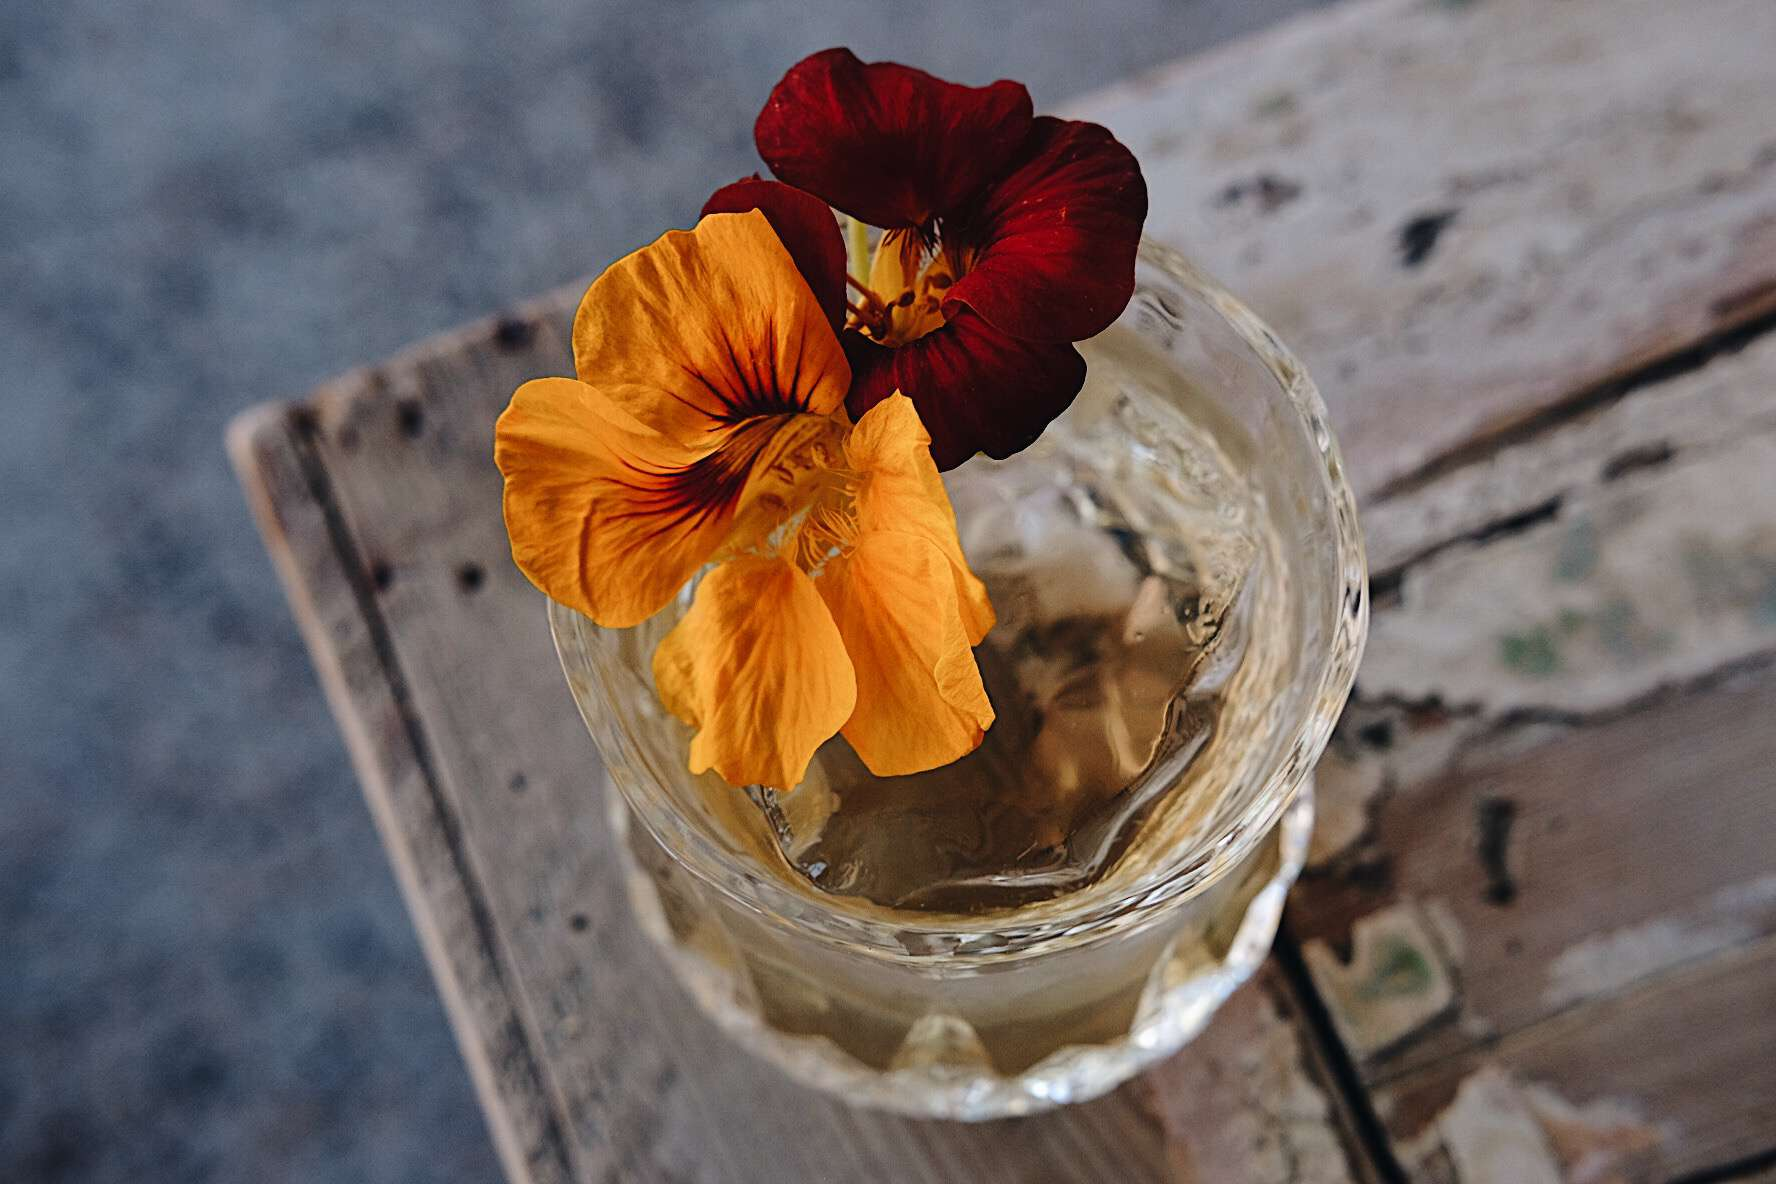 alcohol, signature cocktail, drink, glass, ice, beverage, bar, edible flowers, floral, highball glass